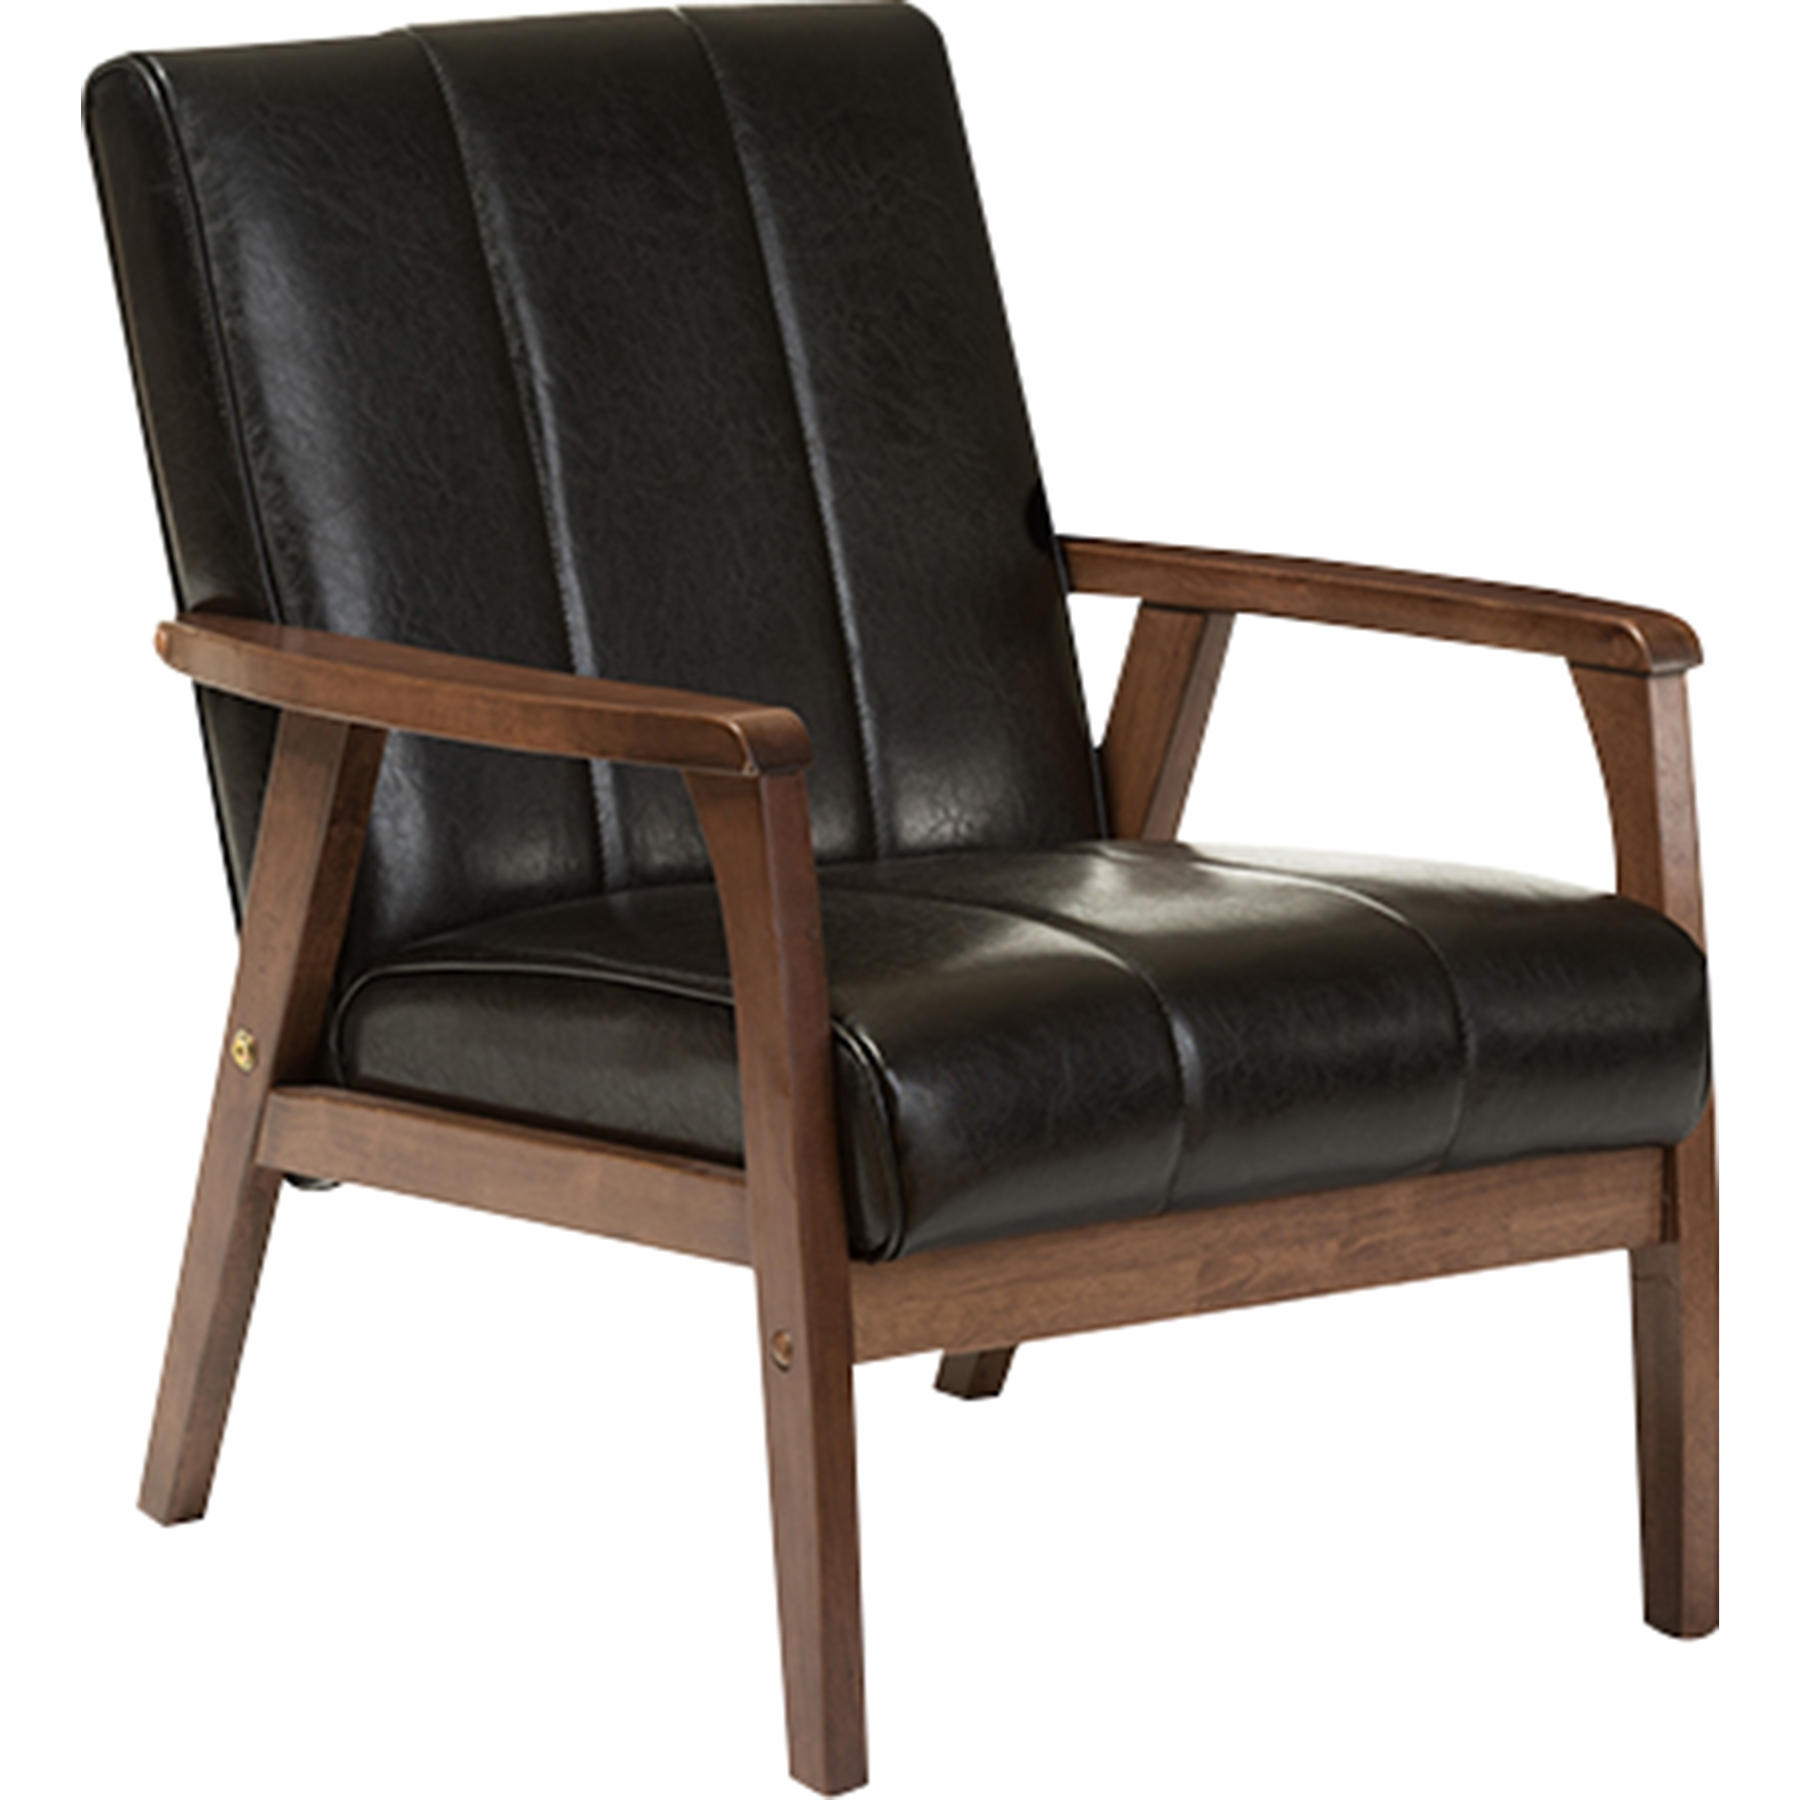 Nikko Faux Leather Lounge Chair   Black   WI BBT8011A2 BLACK CHAIR ...